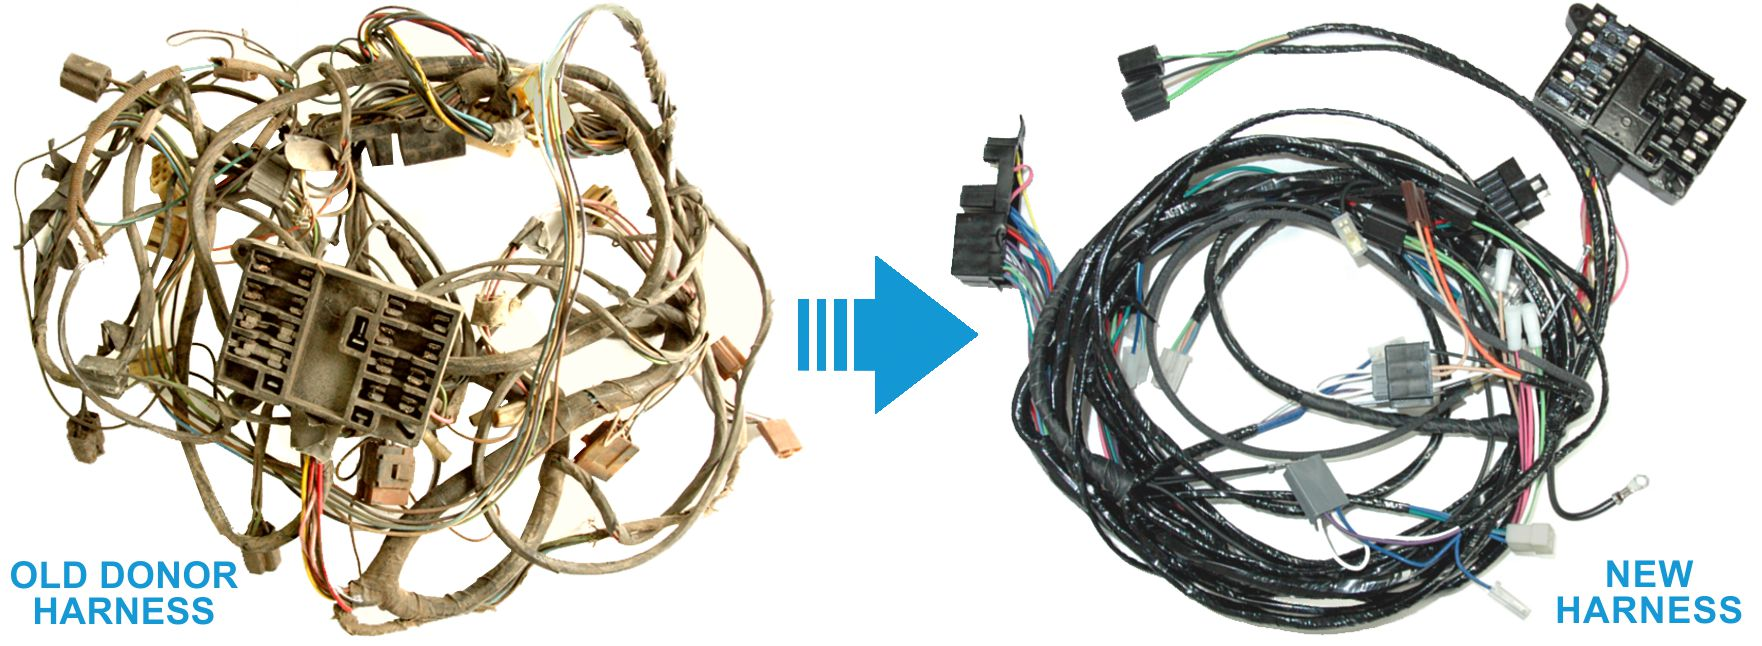 Exact Oem Reproduction Wiring Harnesses For Classic